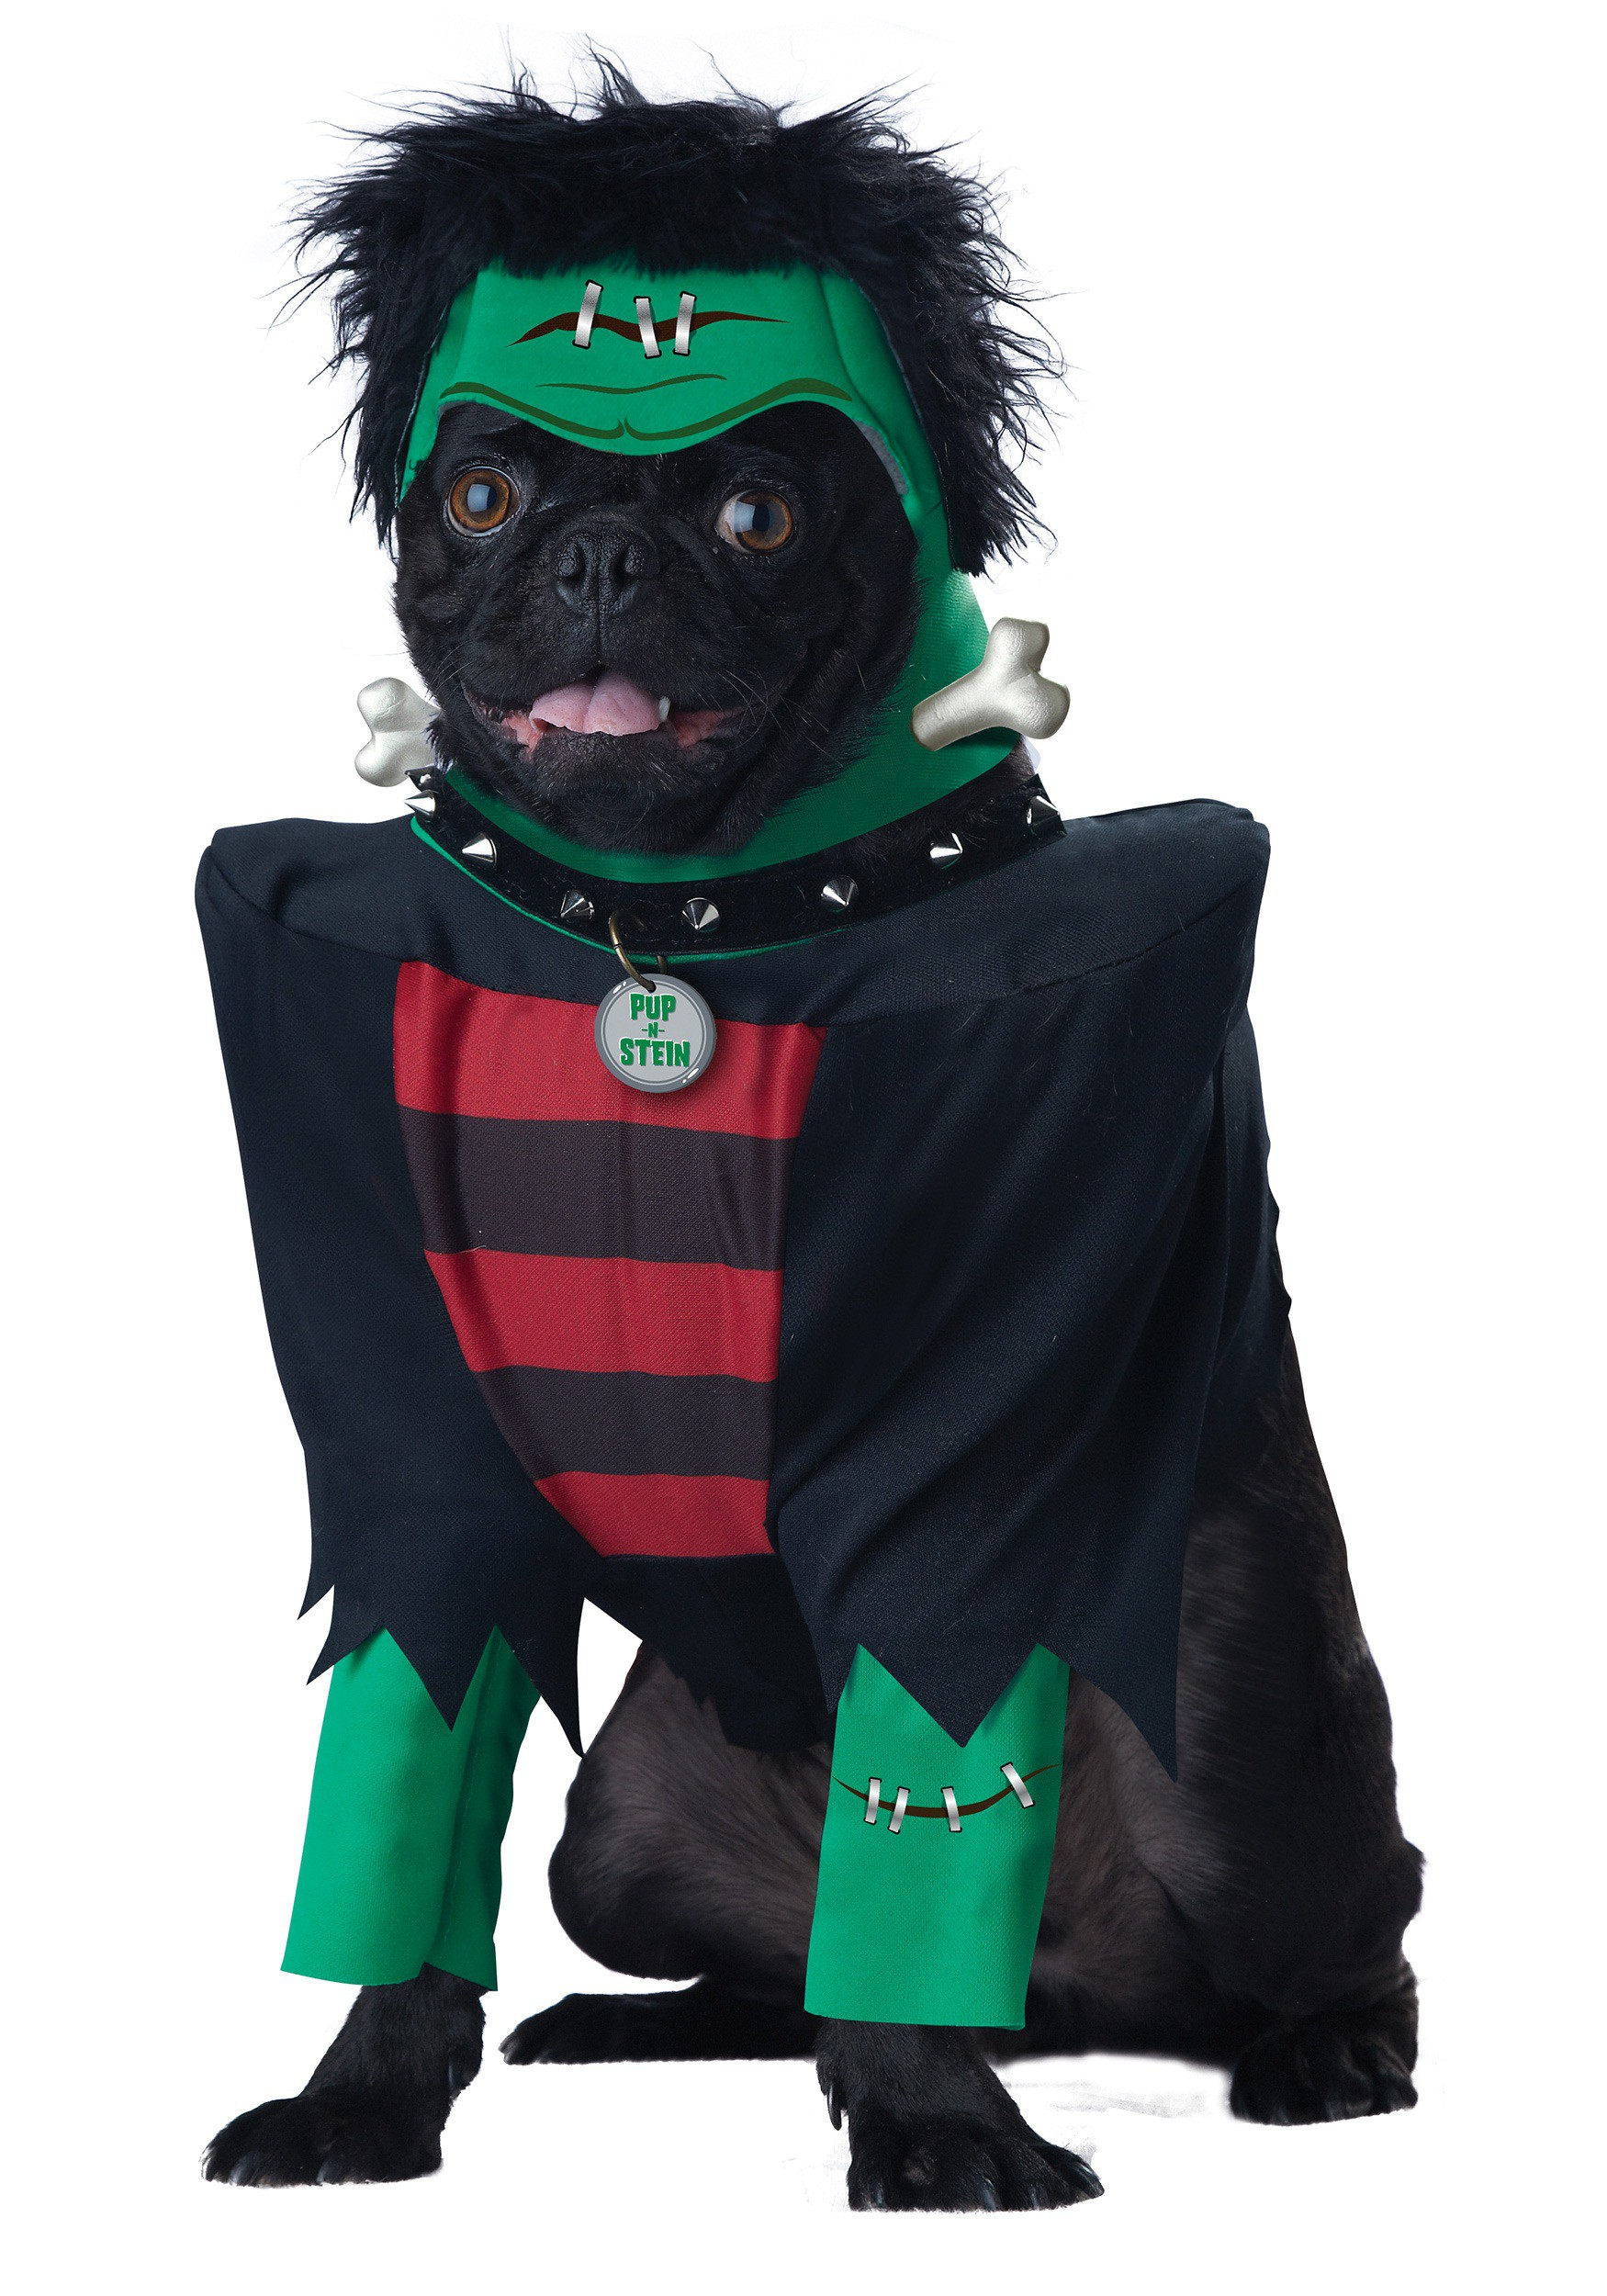 Top 20 Best Cute Dog Costumes for Halloween |Pet Halloween Coustumes